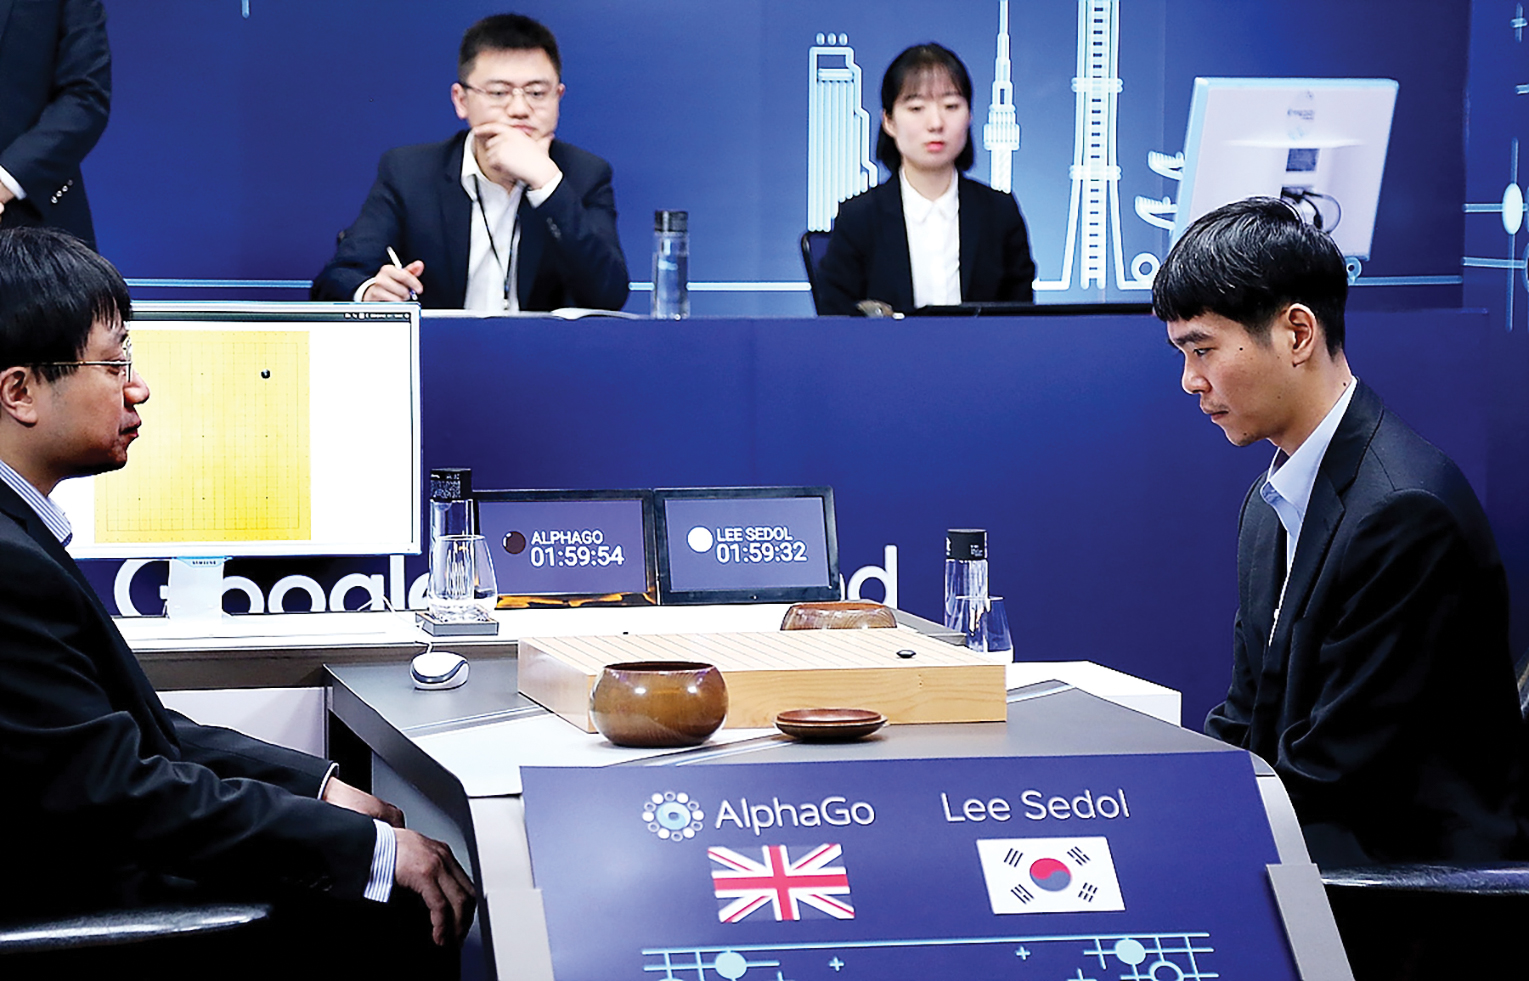 Reinforcement learning led to AlphaGo's stunning victory over a human Go champion last year.